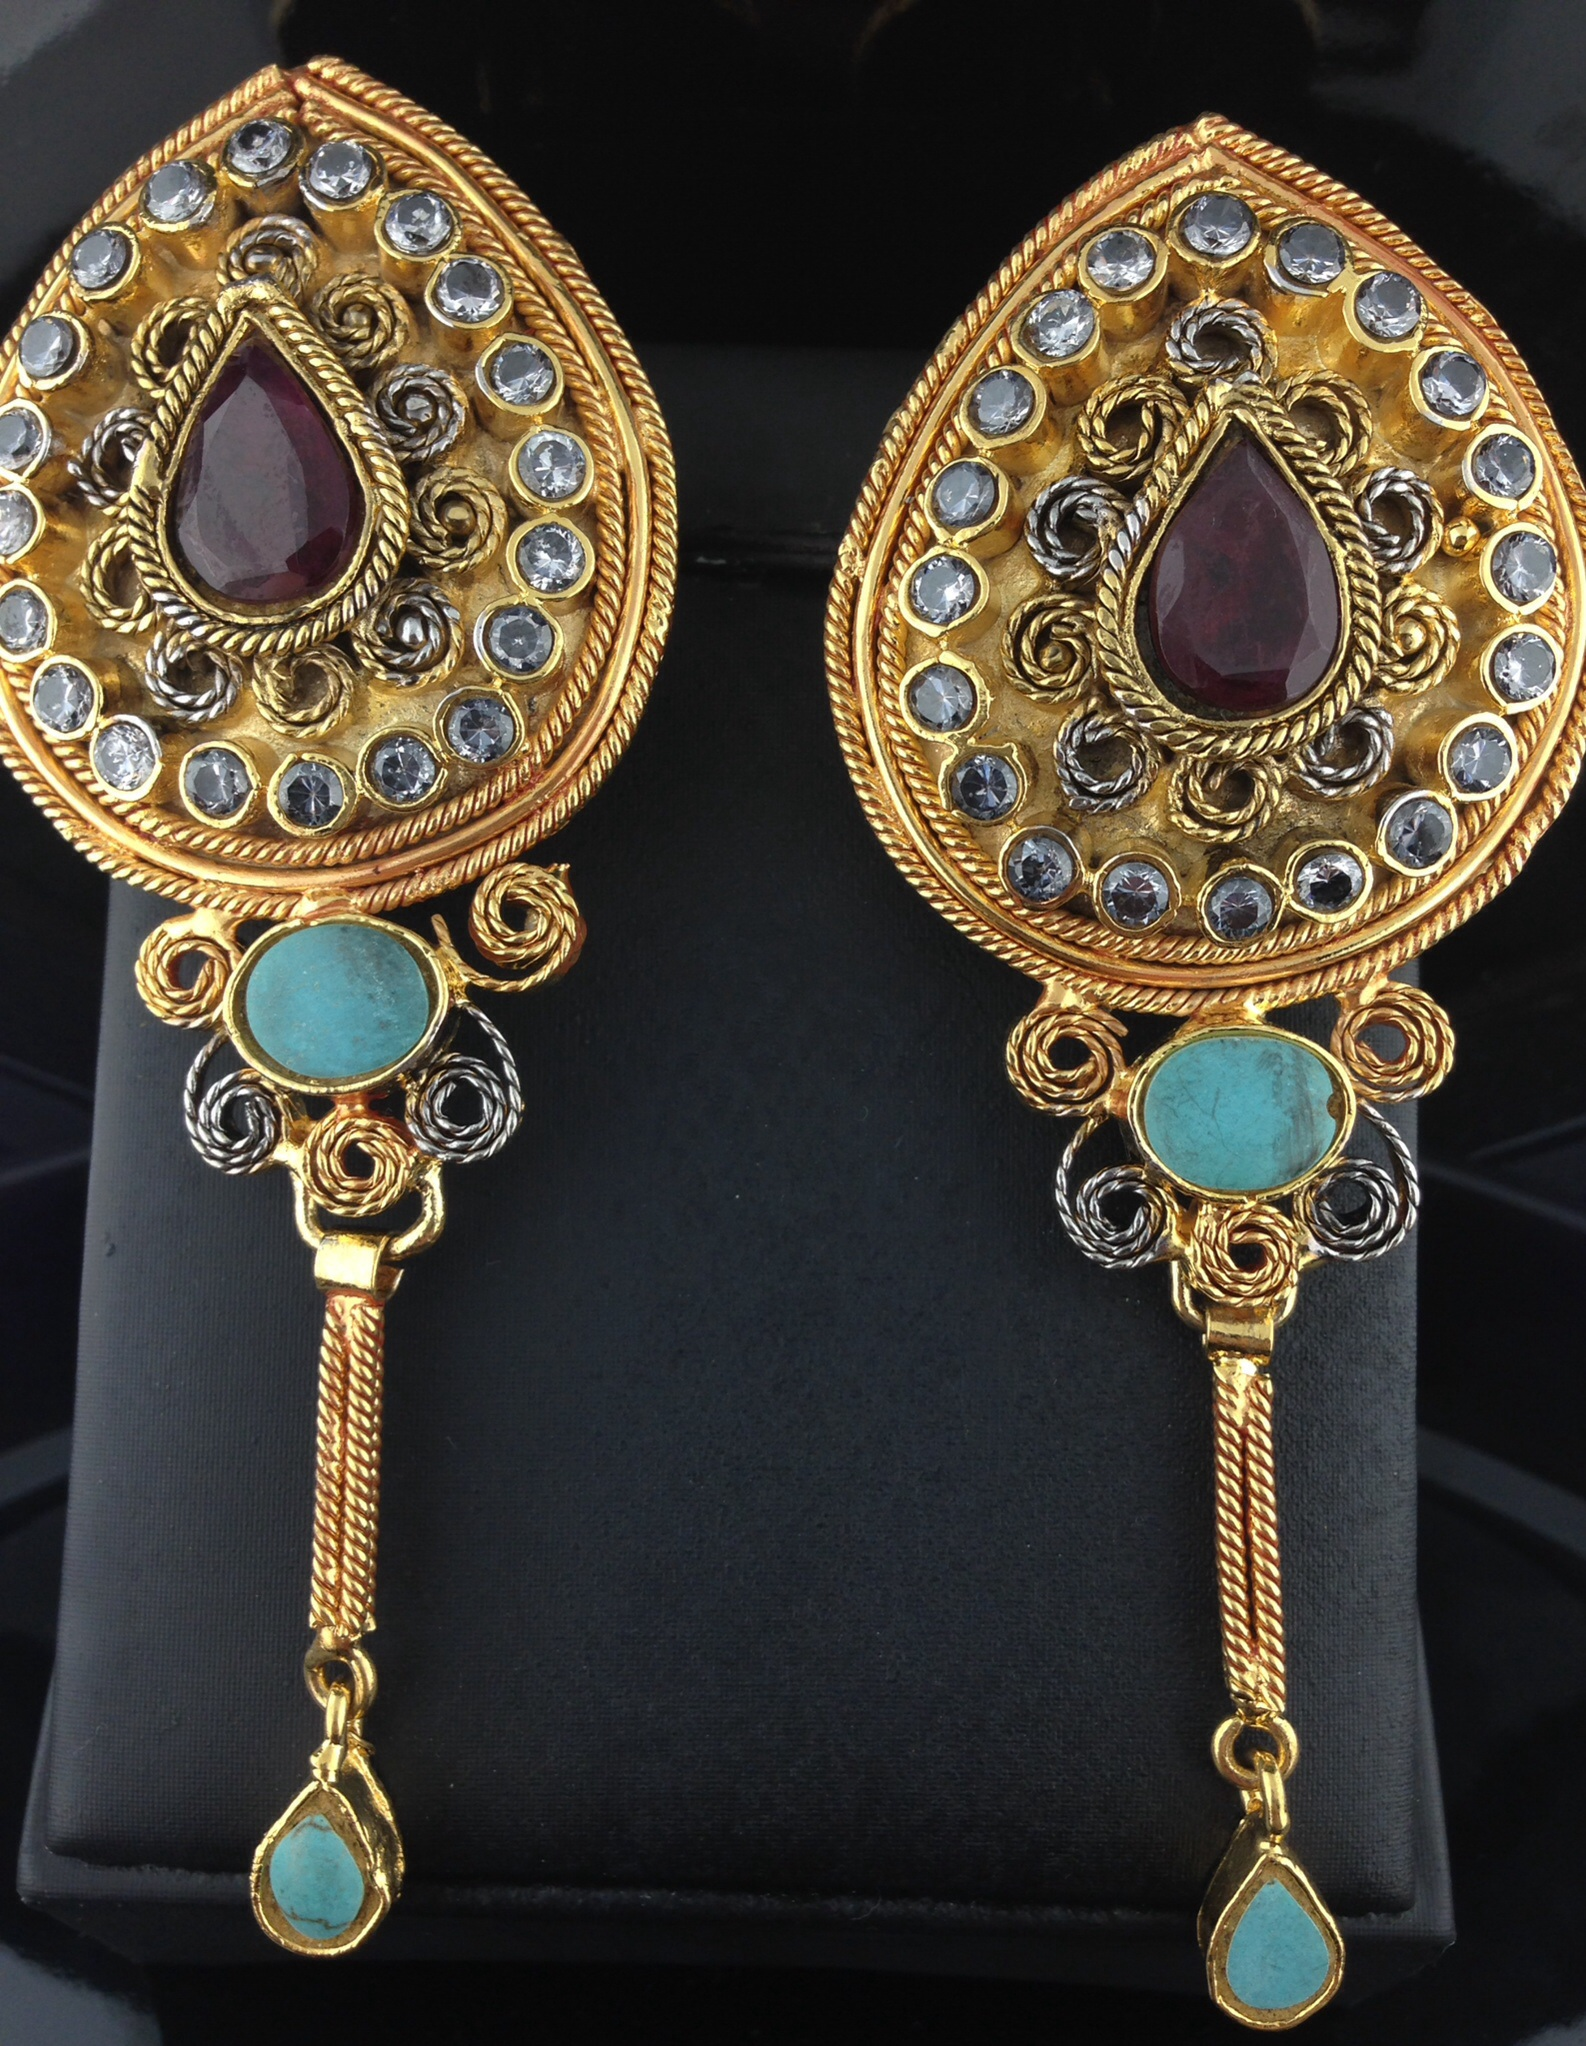 Kundan Earrings With Champagne and Turquoise Stones.